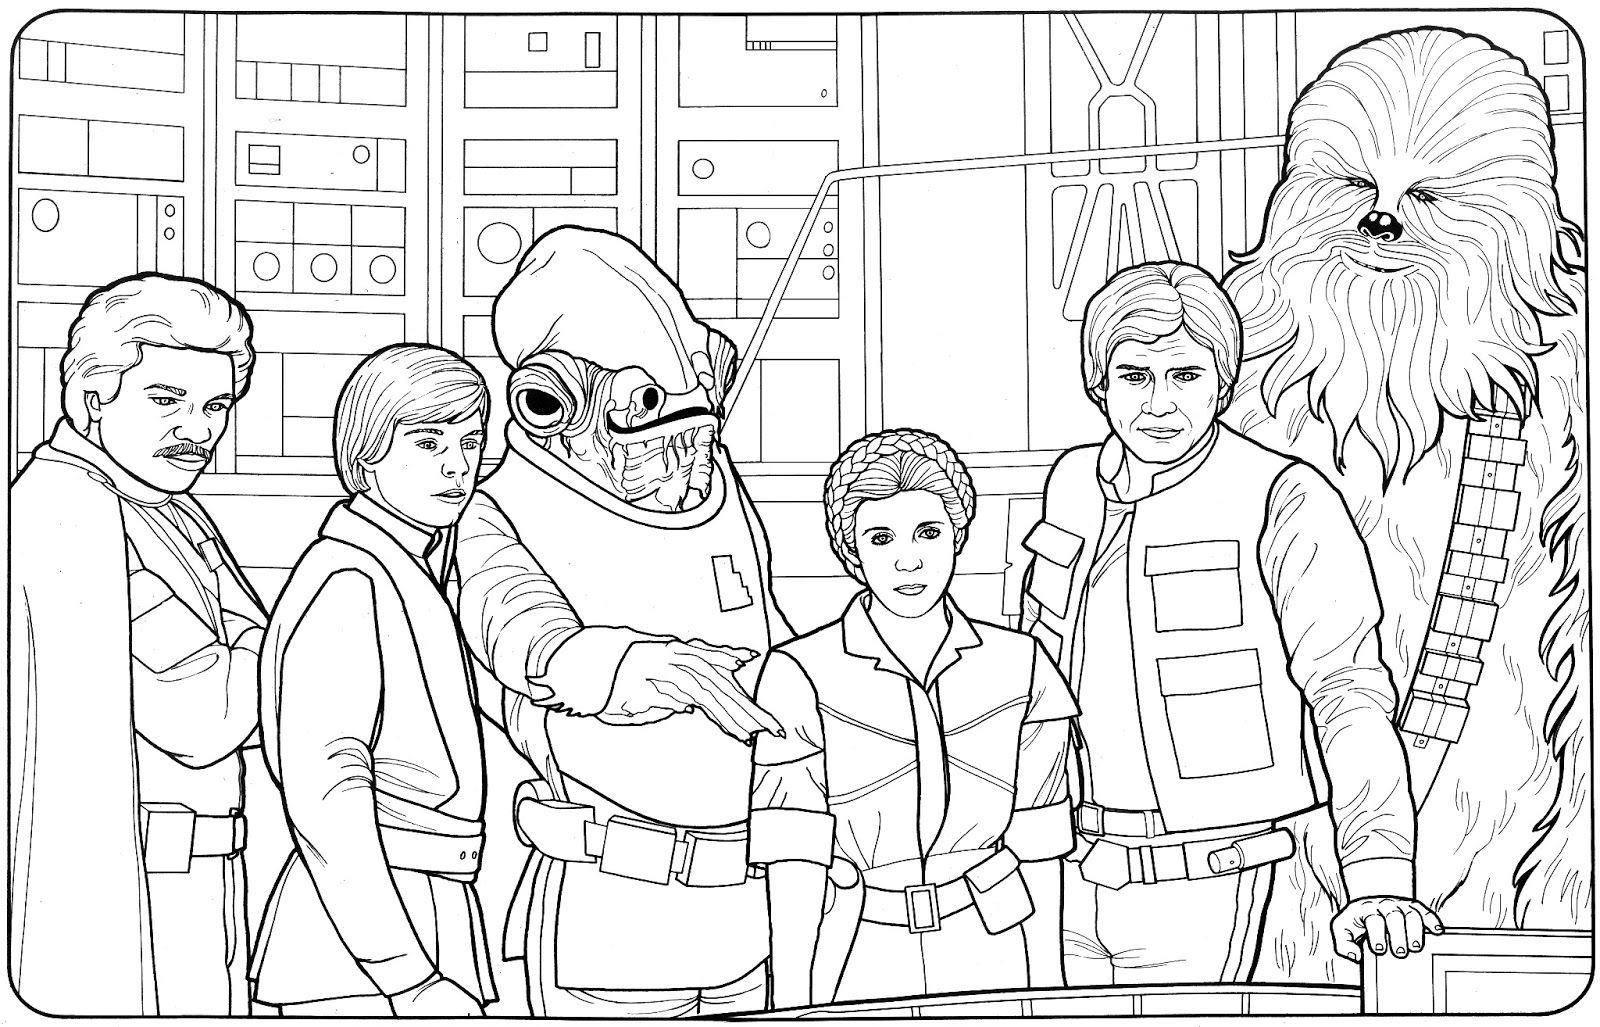 Star Wars Jedi Coloring Pages Star Wars Drawings Star Wars